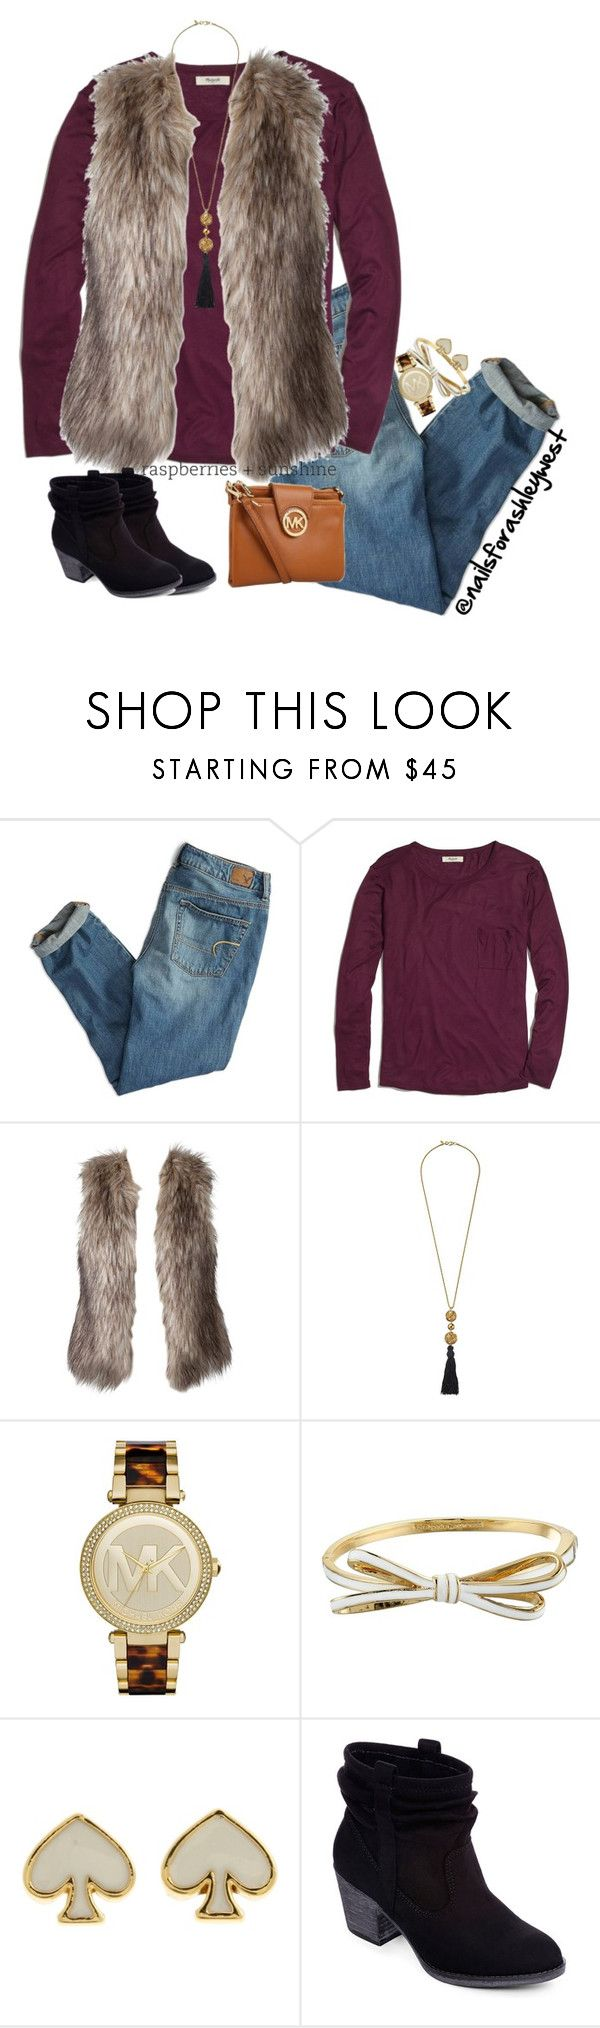 """""""Ehh....."""" by nailsforashleywest ❤ liked on Polyvore featuring American Eagle Outfitters, Madewell, Kenneth Jay Lane, Michael Kors, Kate Spade, Rocket Dog, women's clothing, women's fashion, women and female"""